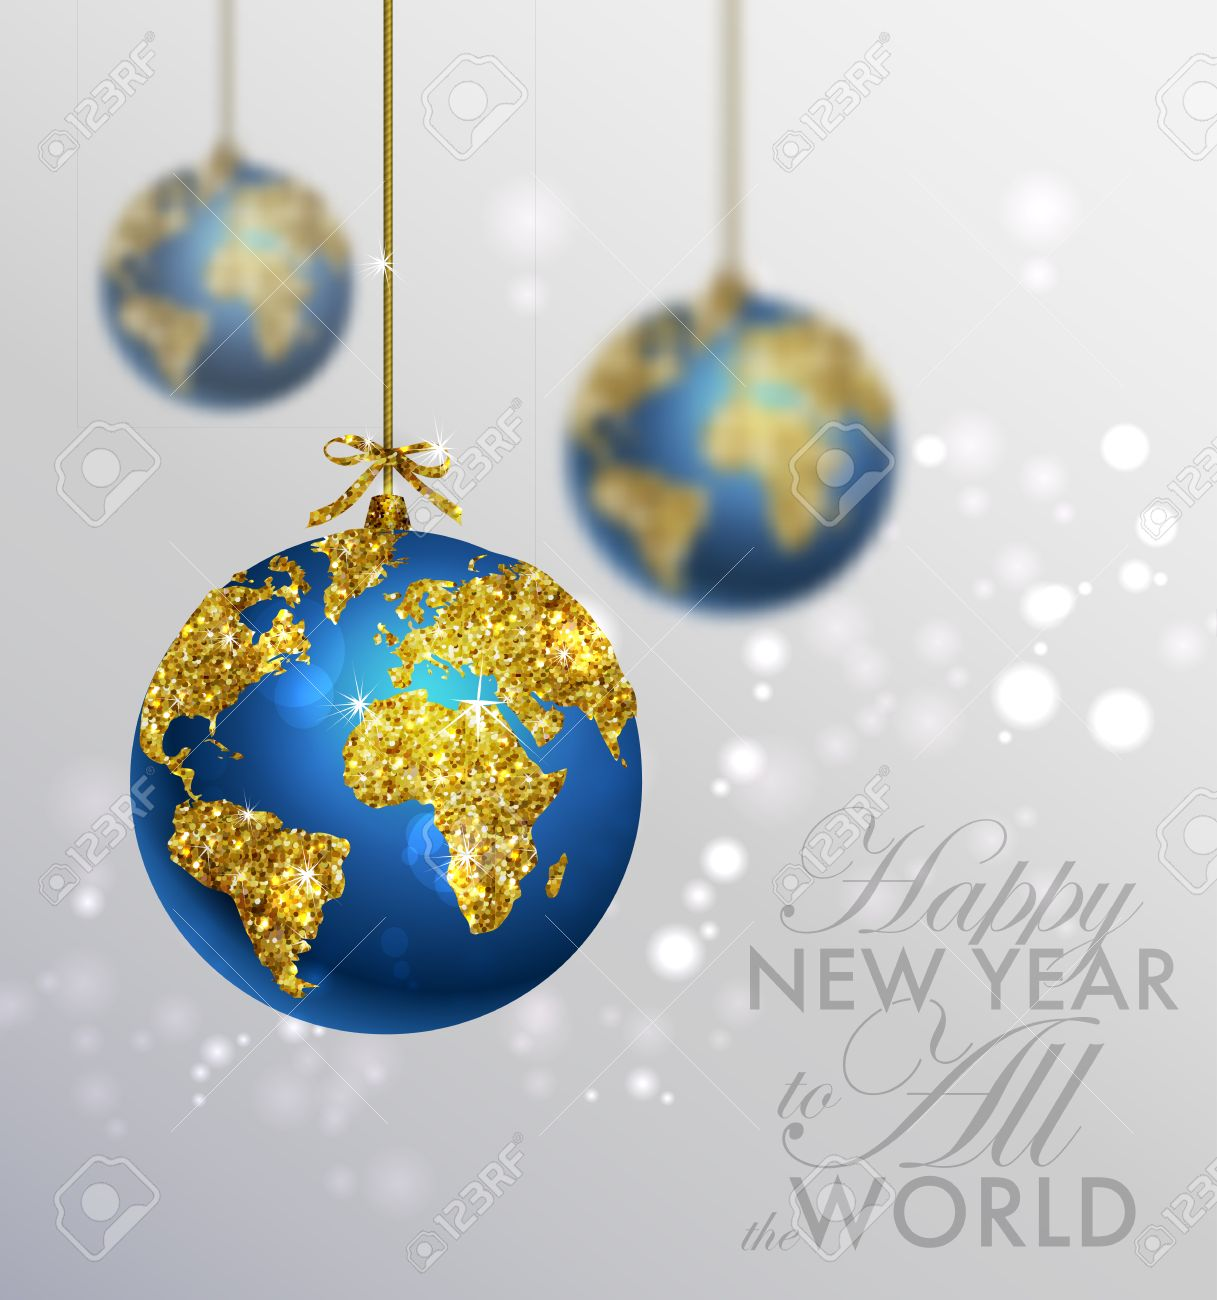 Glitter Christmas Ball With World Map Greeting Card With Typography And Gold  World Globe